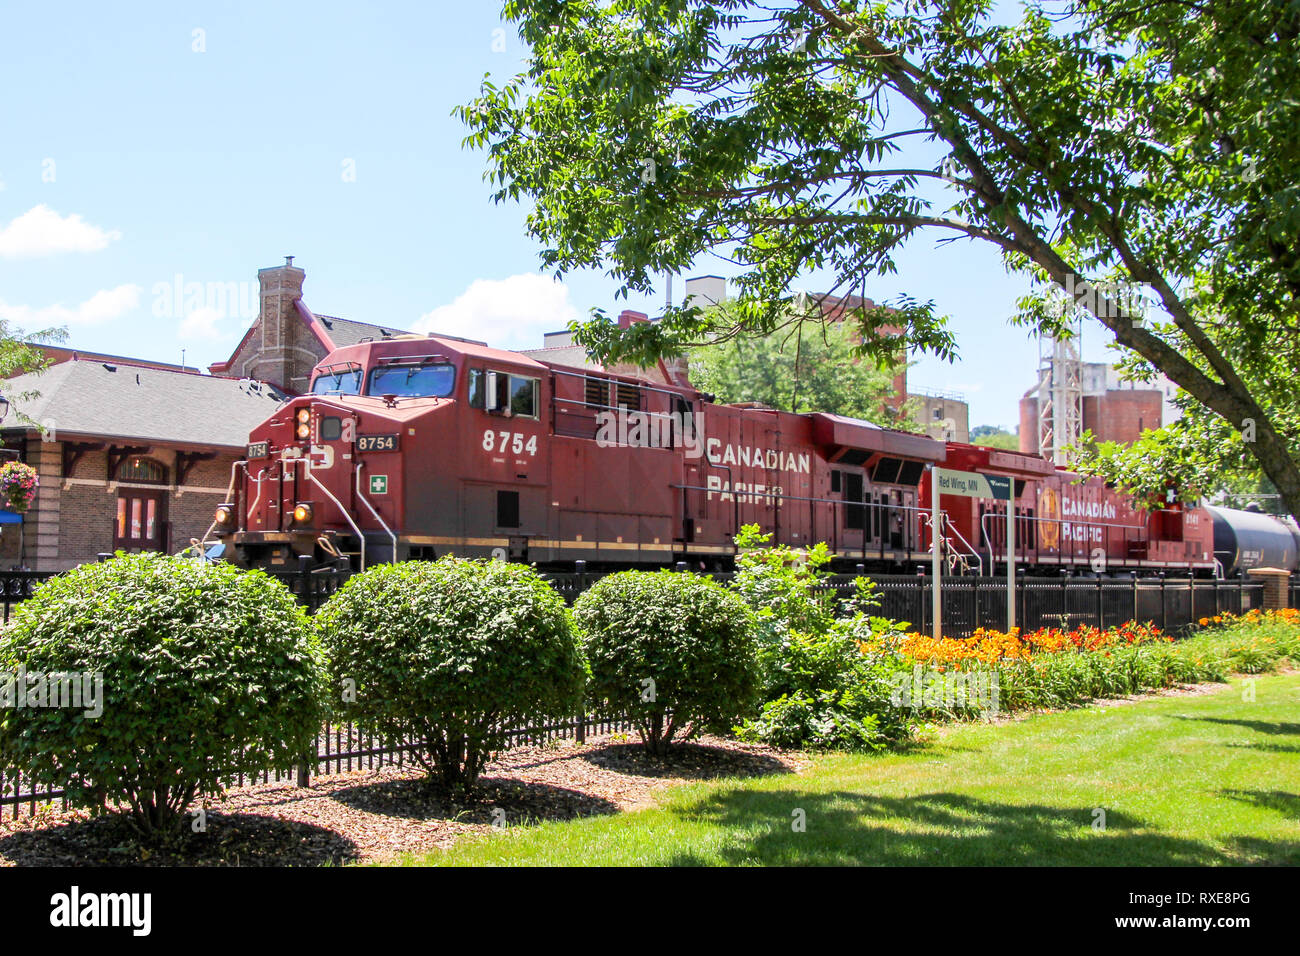 Locomotive passing Red Wing, MN train depot - Stock Image